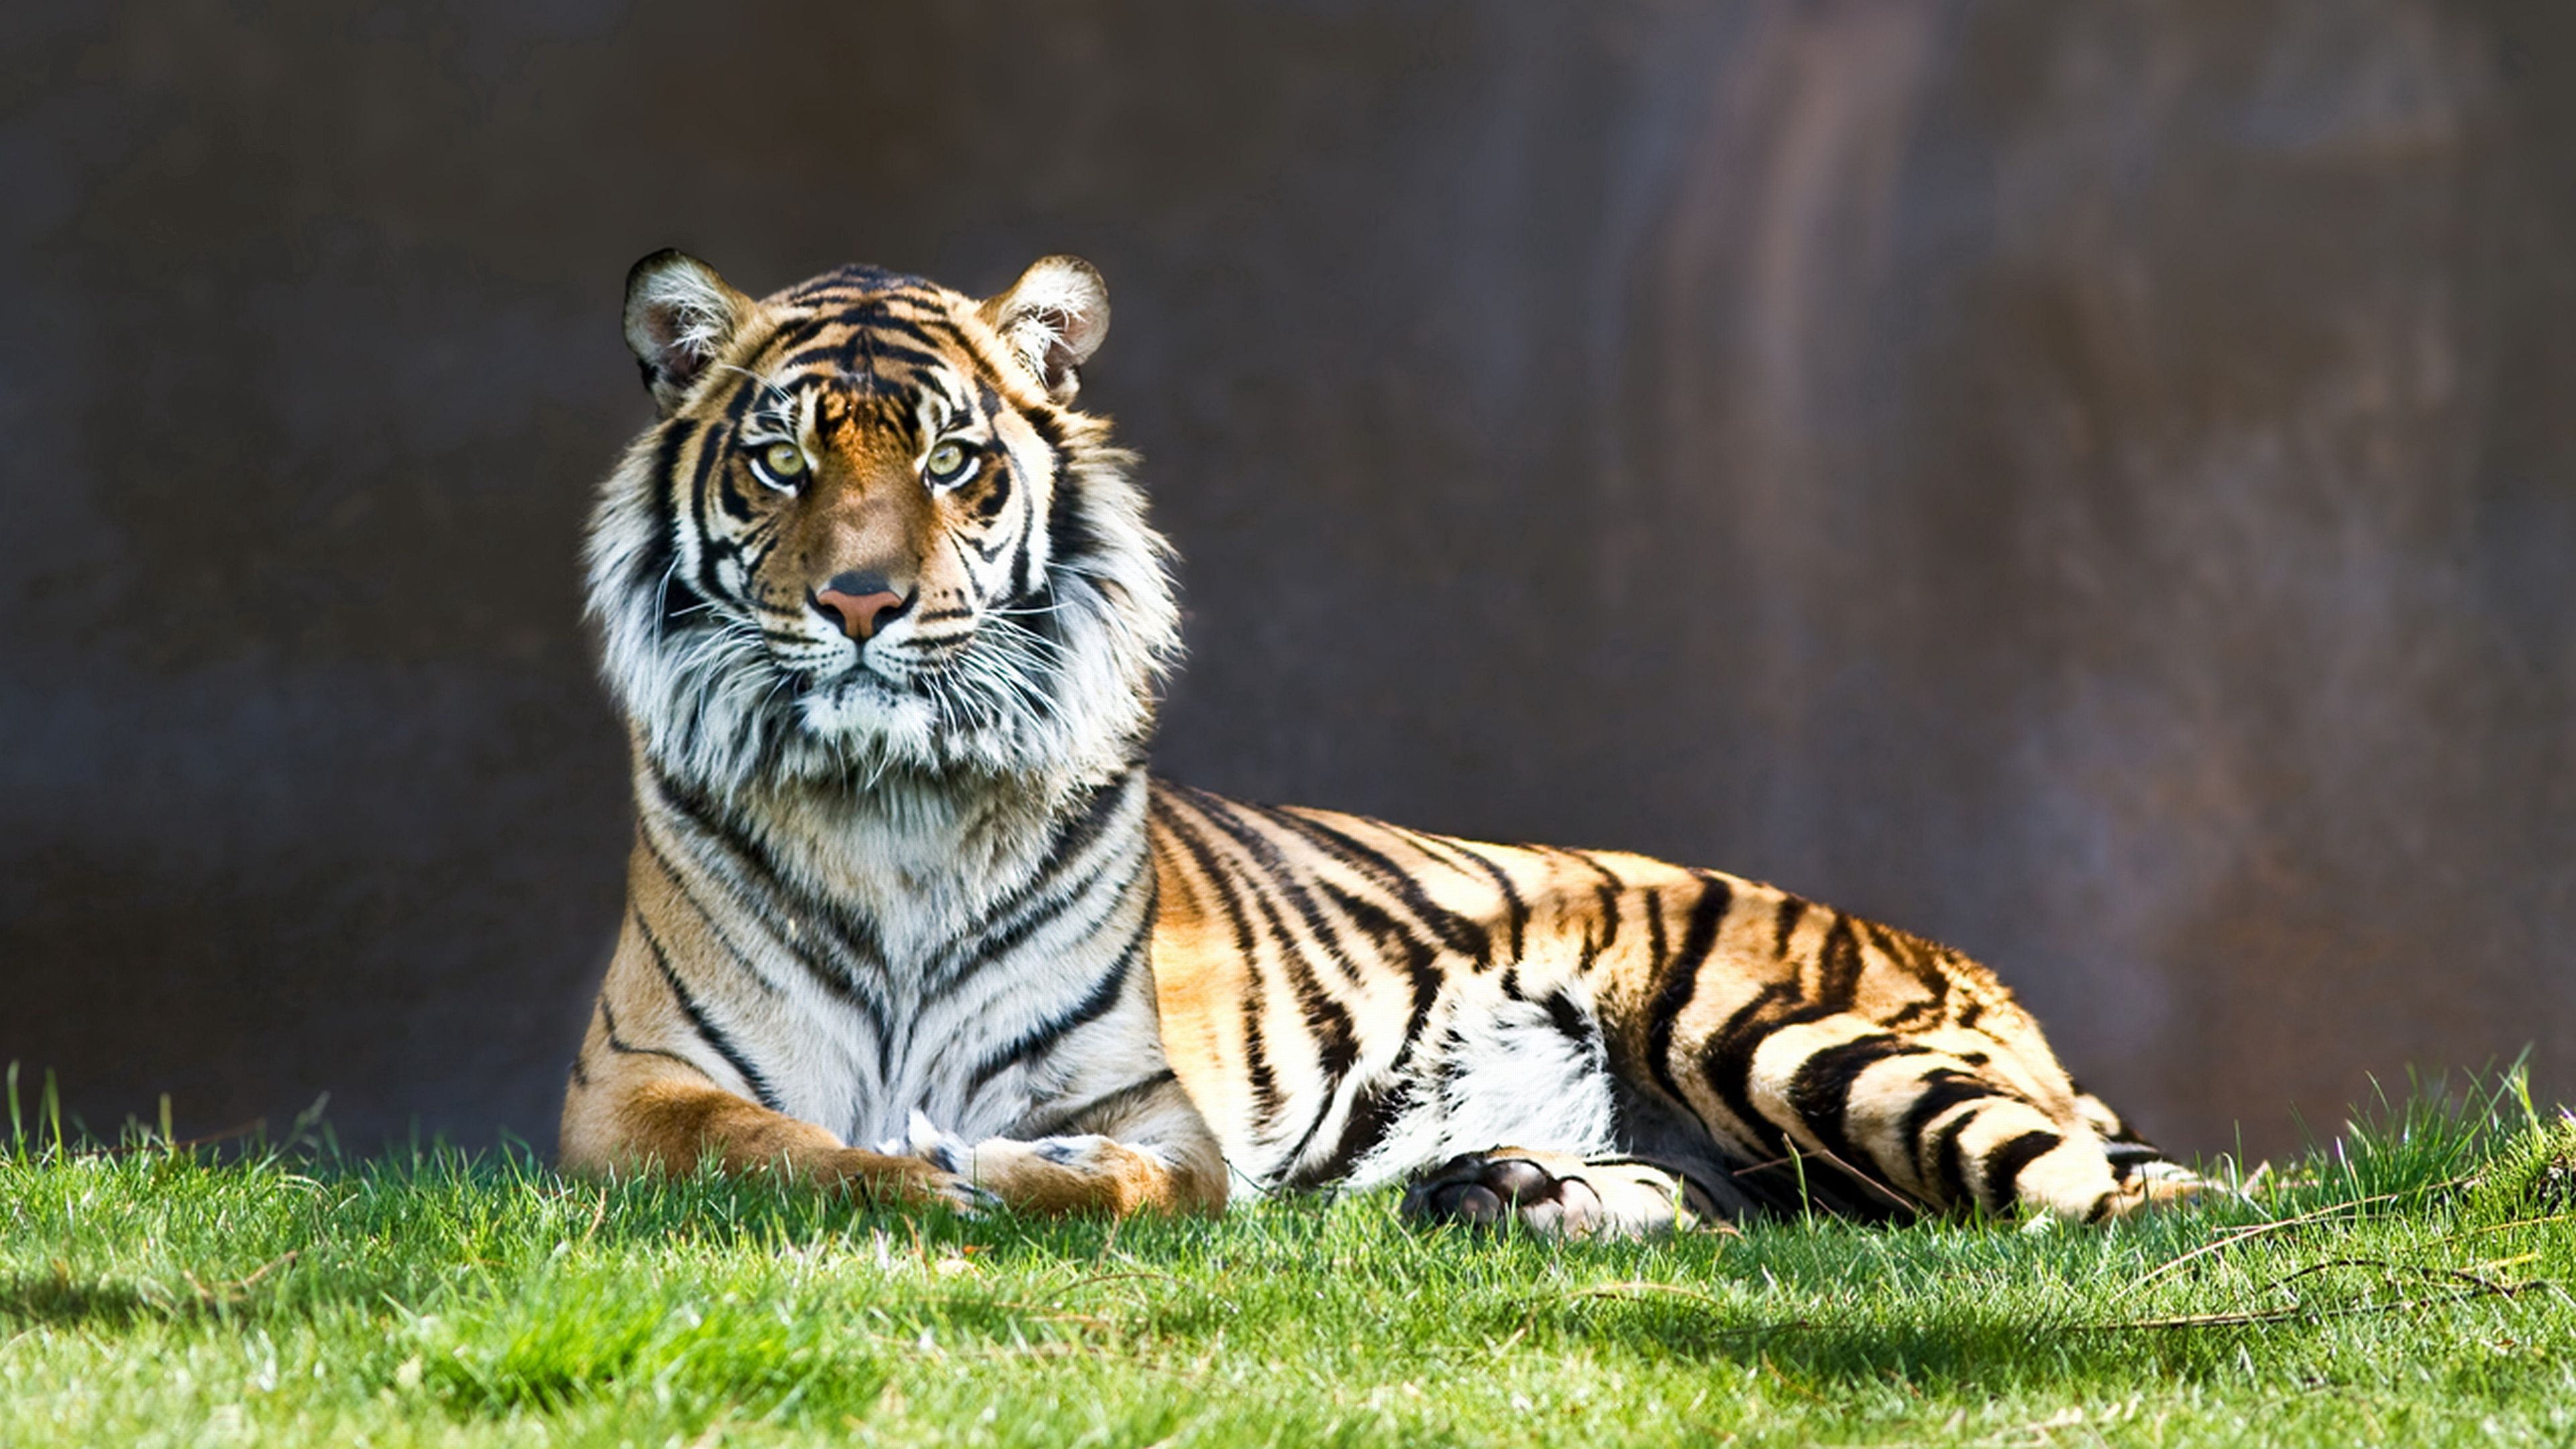 147508 download wallpaper Animals, Tiger, Grass, To Lie Down, Lie, Predator screensavers and pictures for free